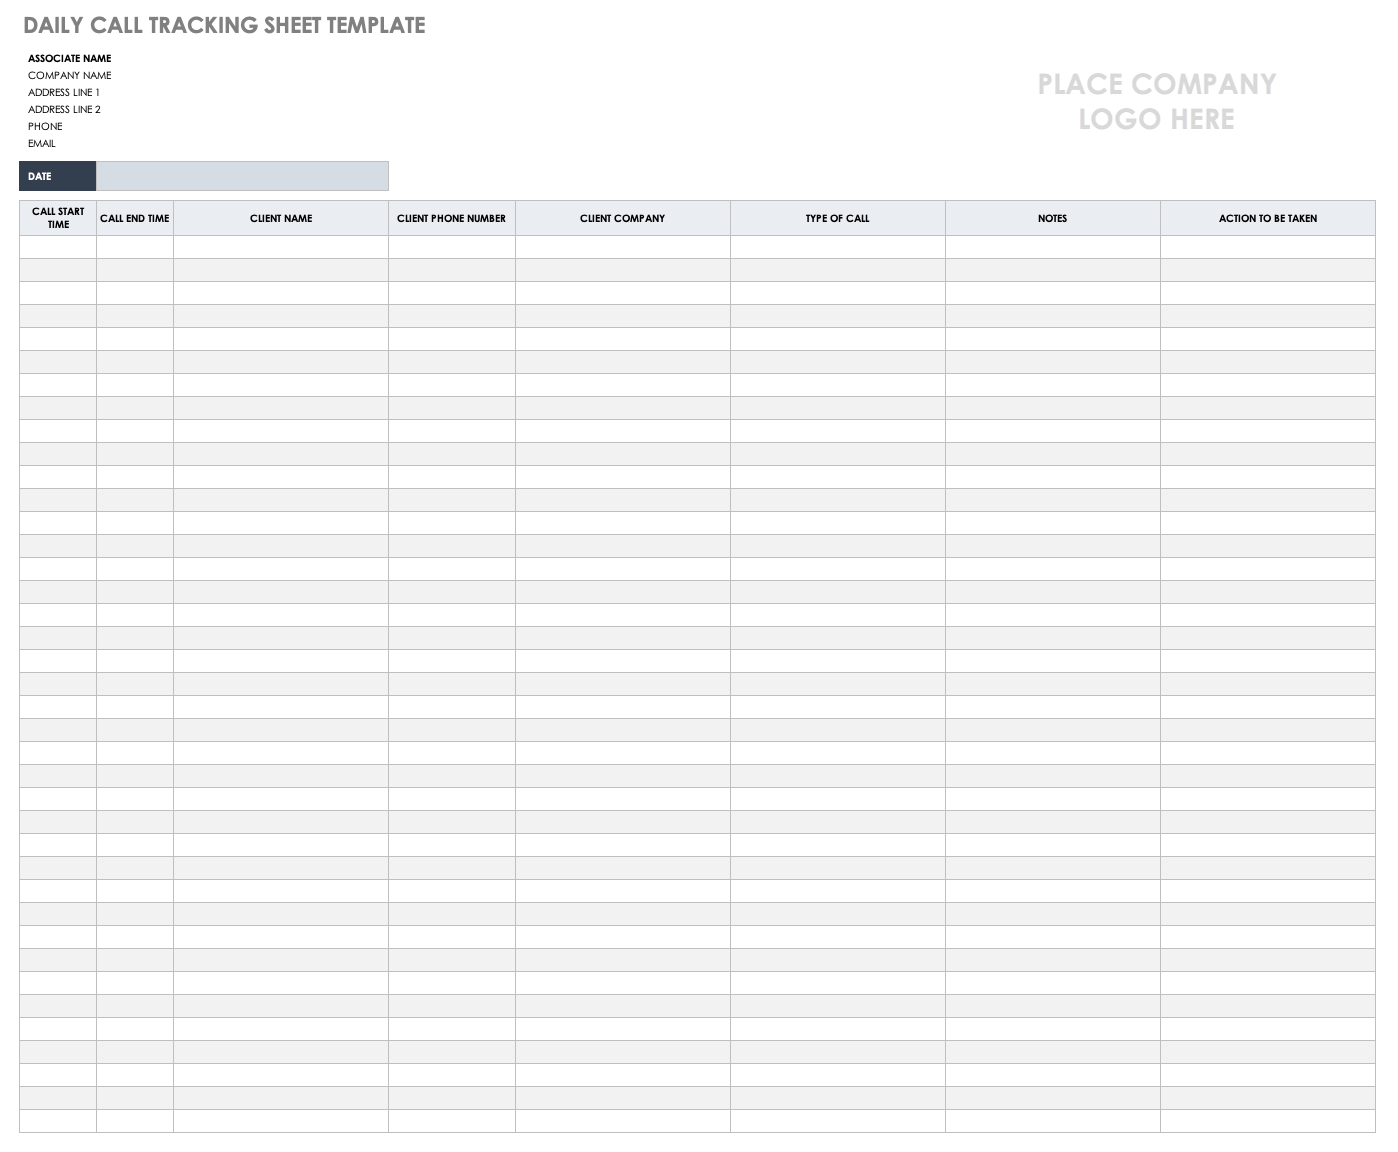 Daily Call Tracking Sheet Template